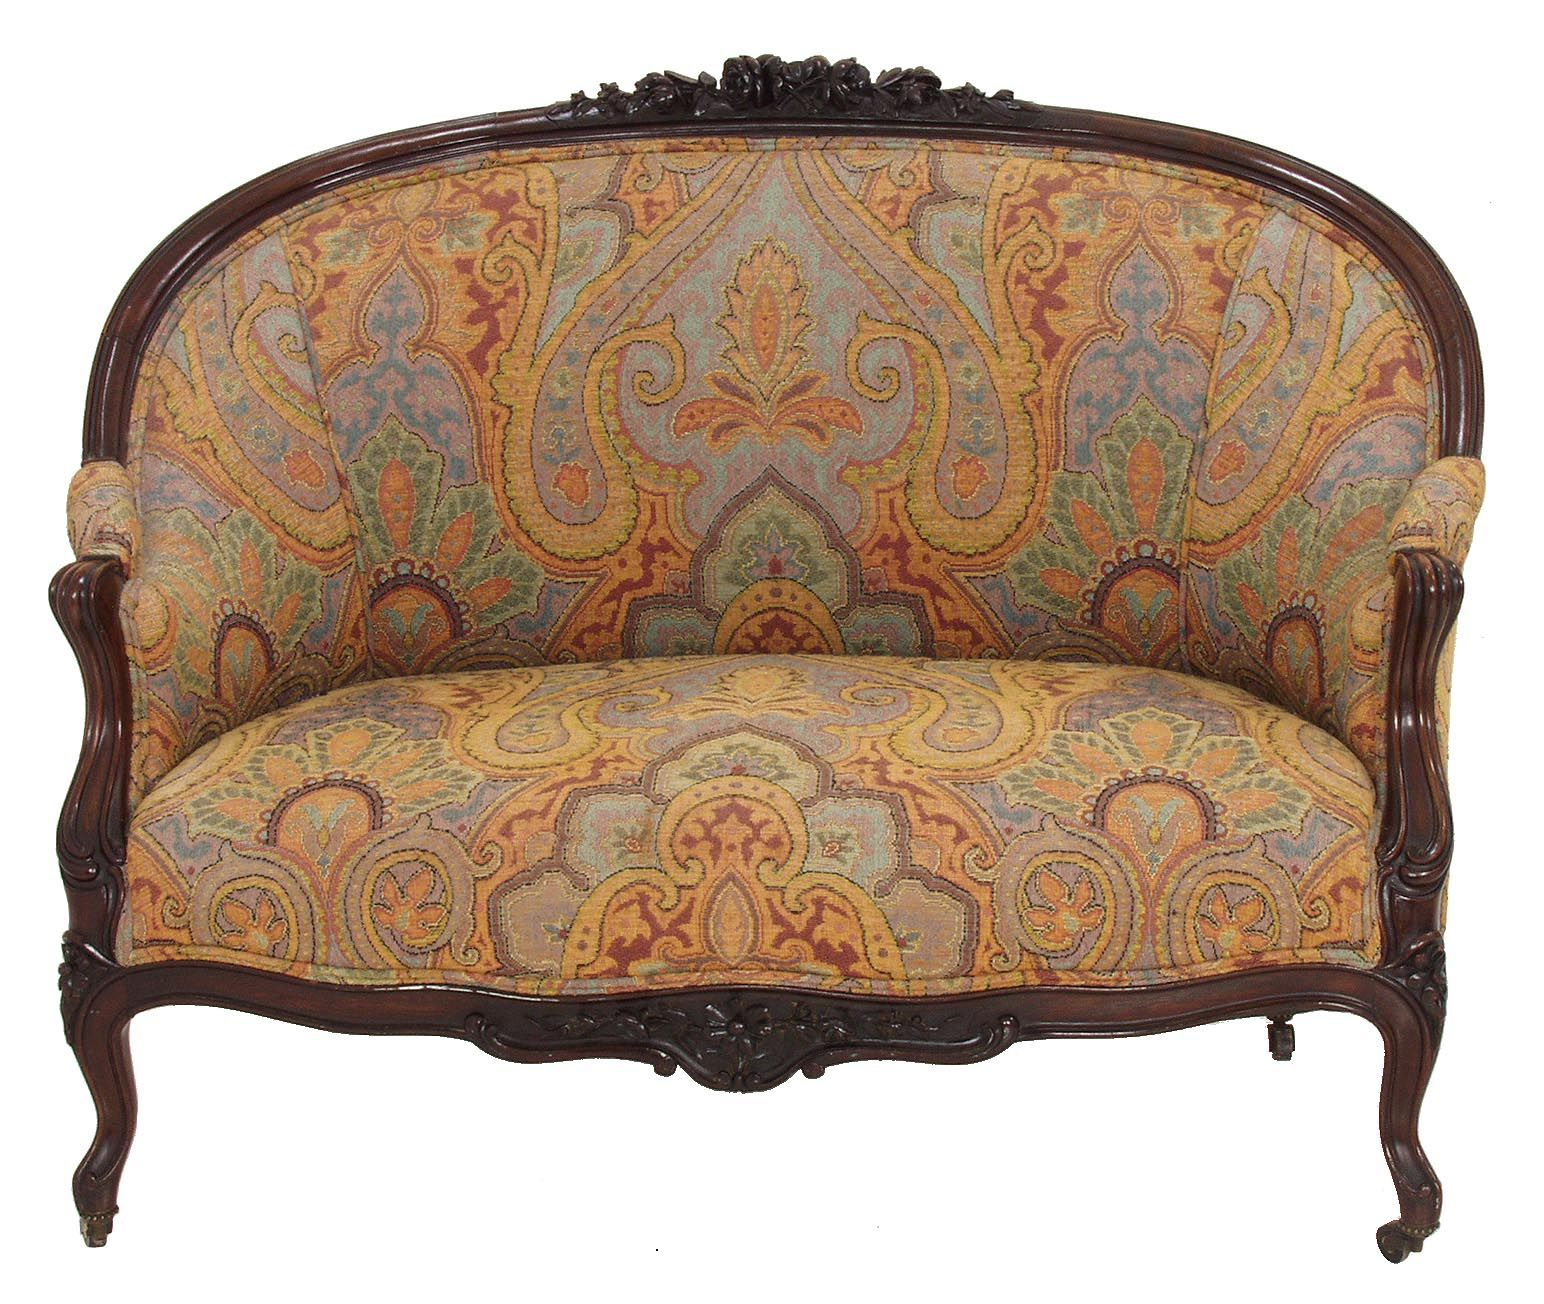 Google Chair Victorian Furniture Google Search The Victorian Era